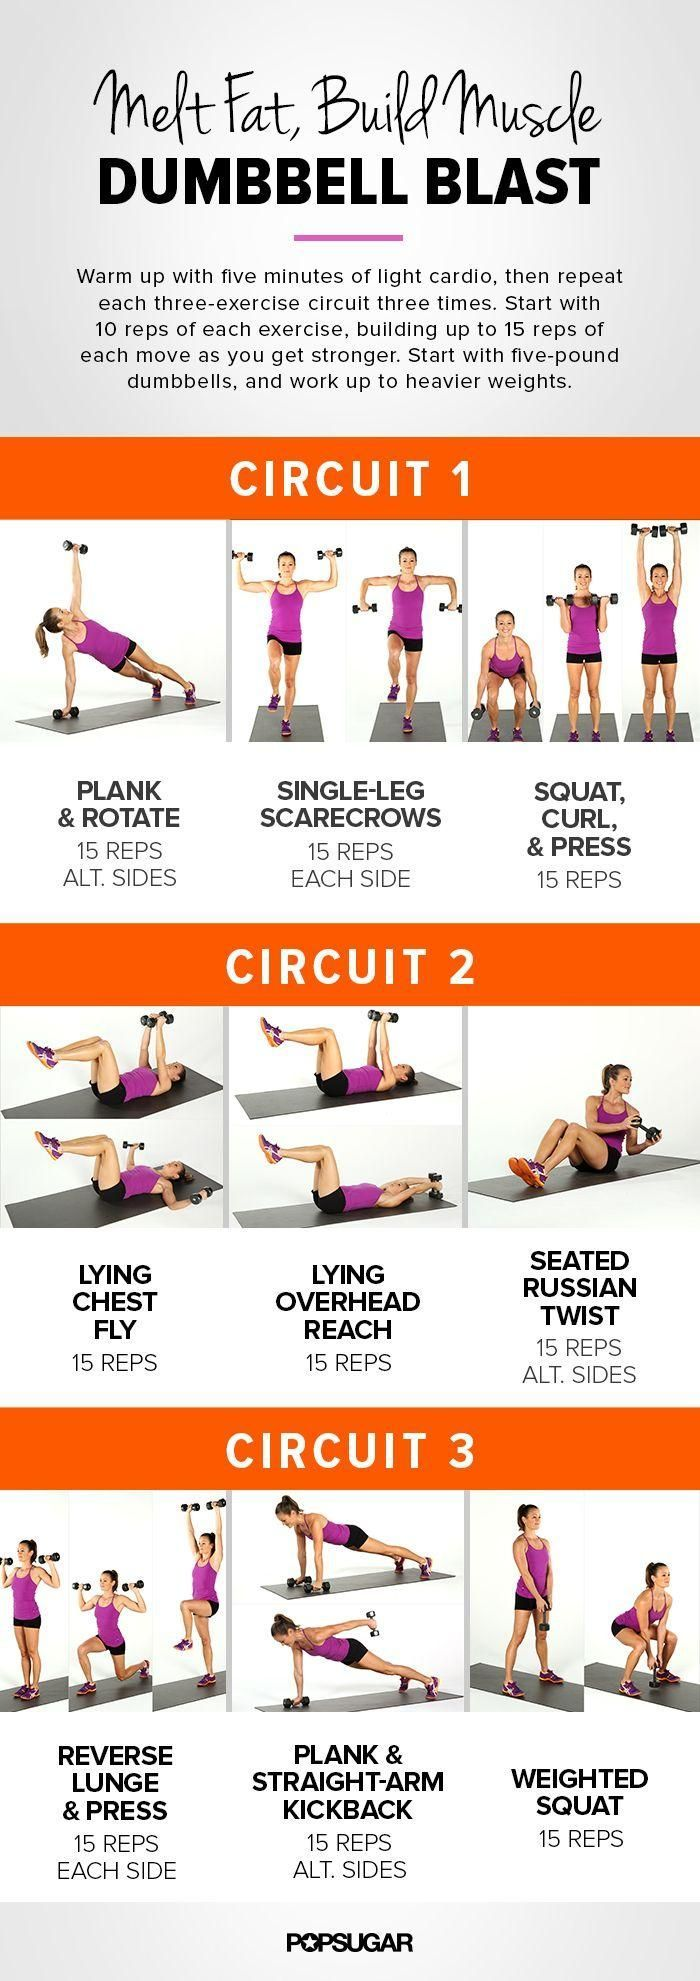 This dumbbell workout circuit will zap fat and build up arm muscles at the same time. Print out this how-to guide and get started!